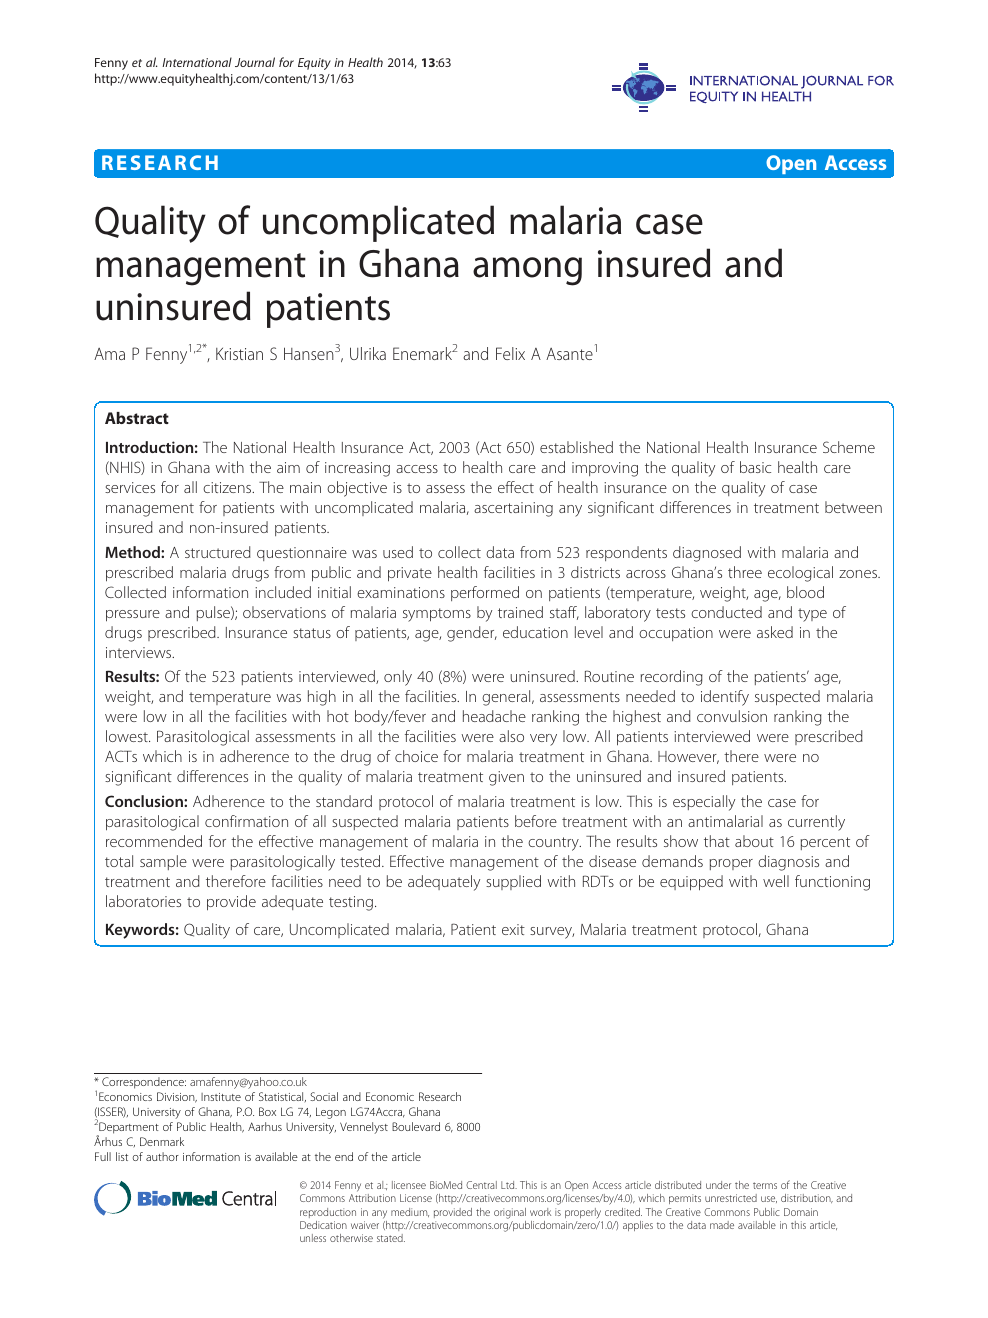 Quality of uncomplicated malaria case management in Ghana among